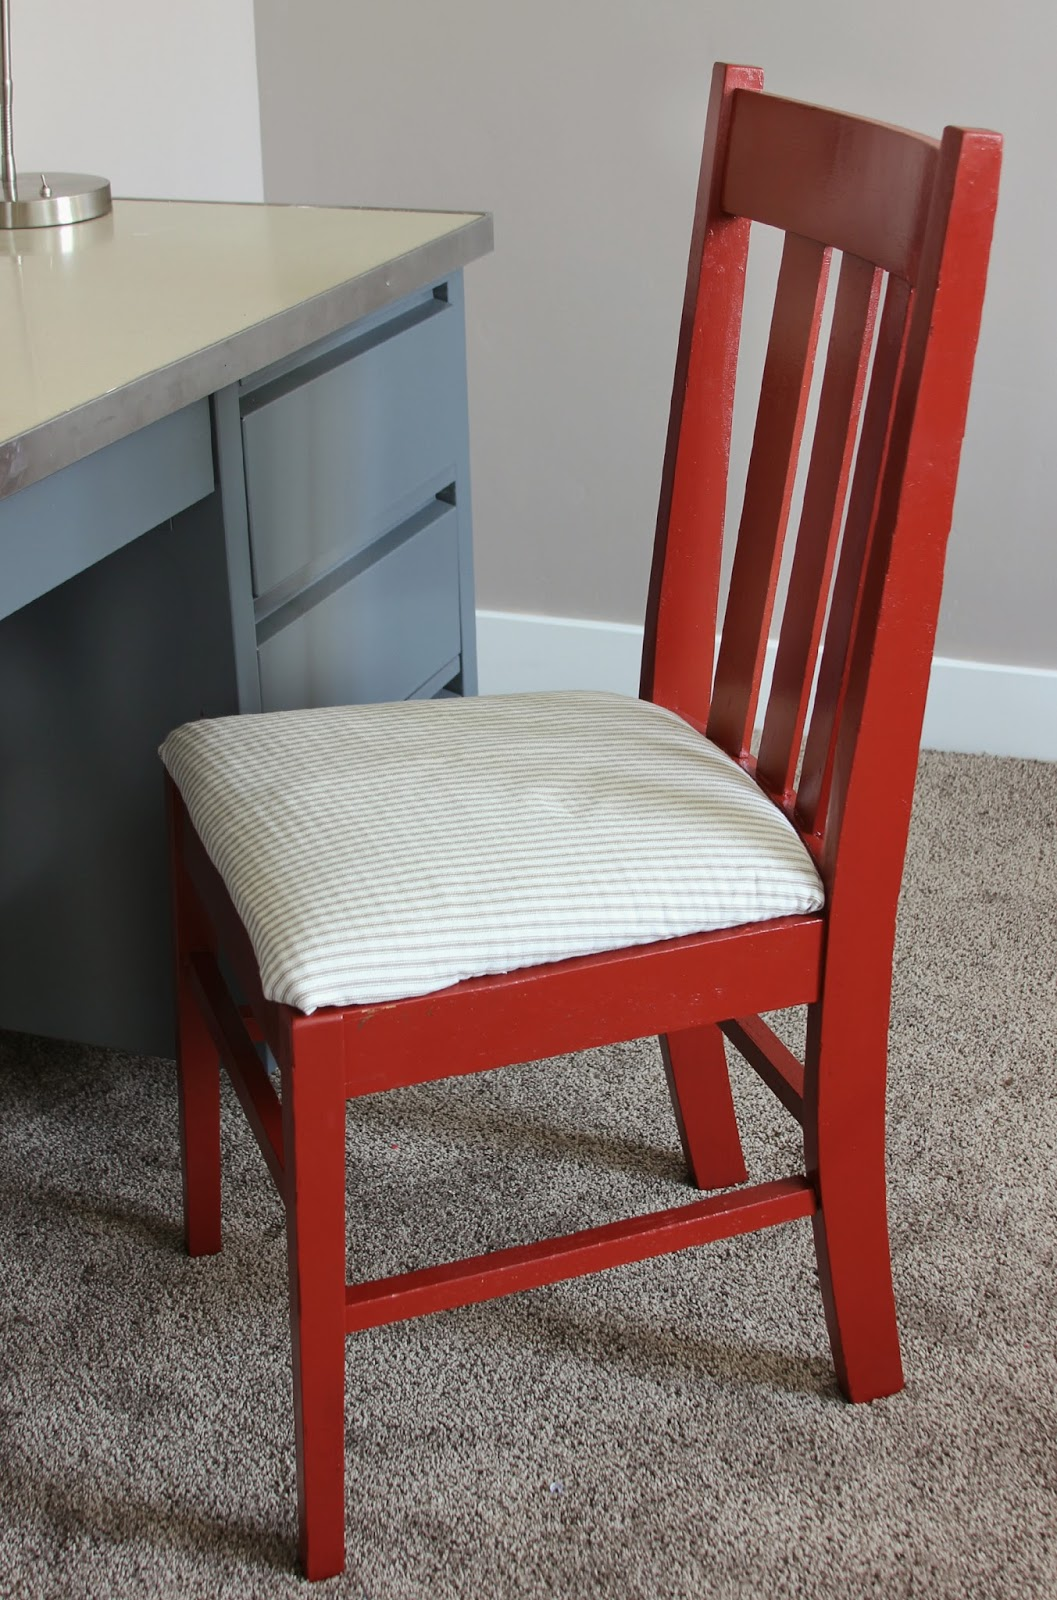 A Fun Contrast So I Used Sherwin Williams Fireweed SW 6328 Perfect Red And Basic Ticking Stripe Fabric For The Chair